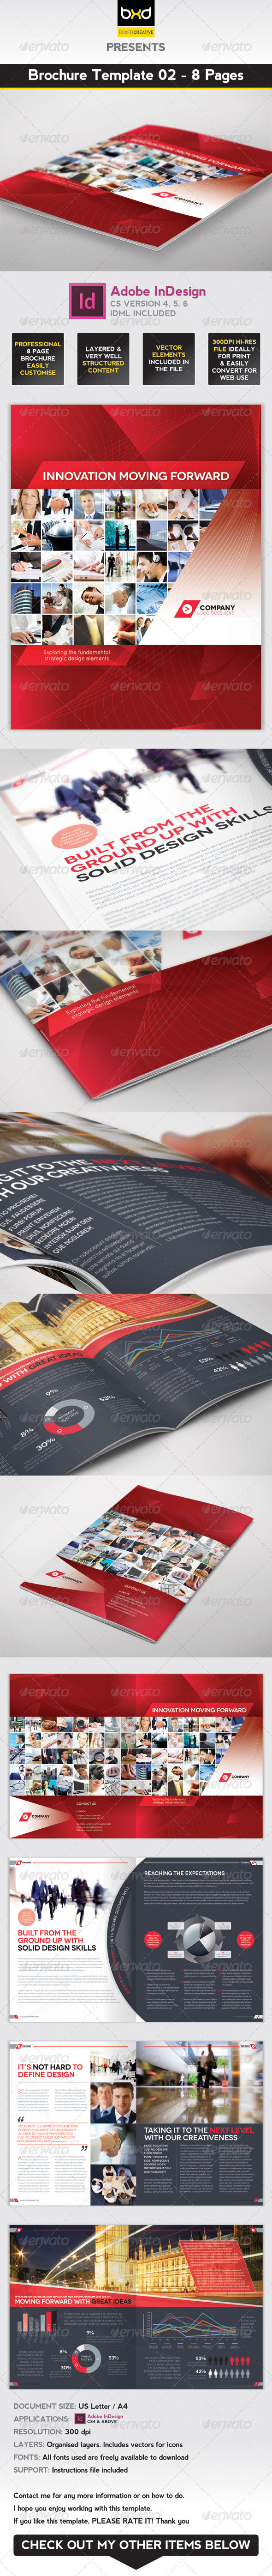 Brochure Template - InDesign 8 Page Layout 02 - Corporate Brochures